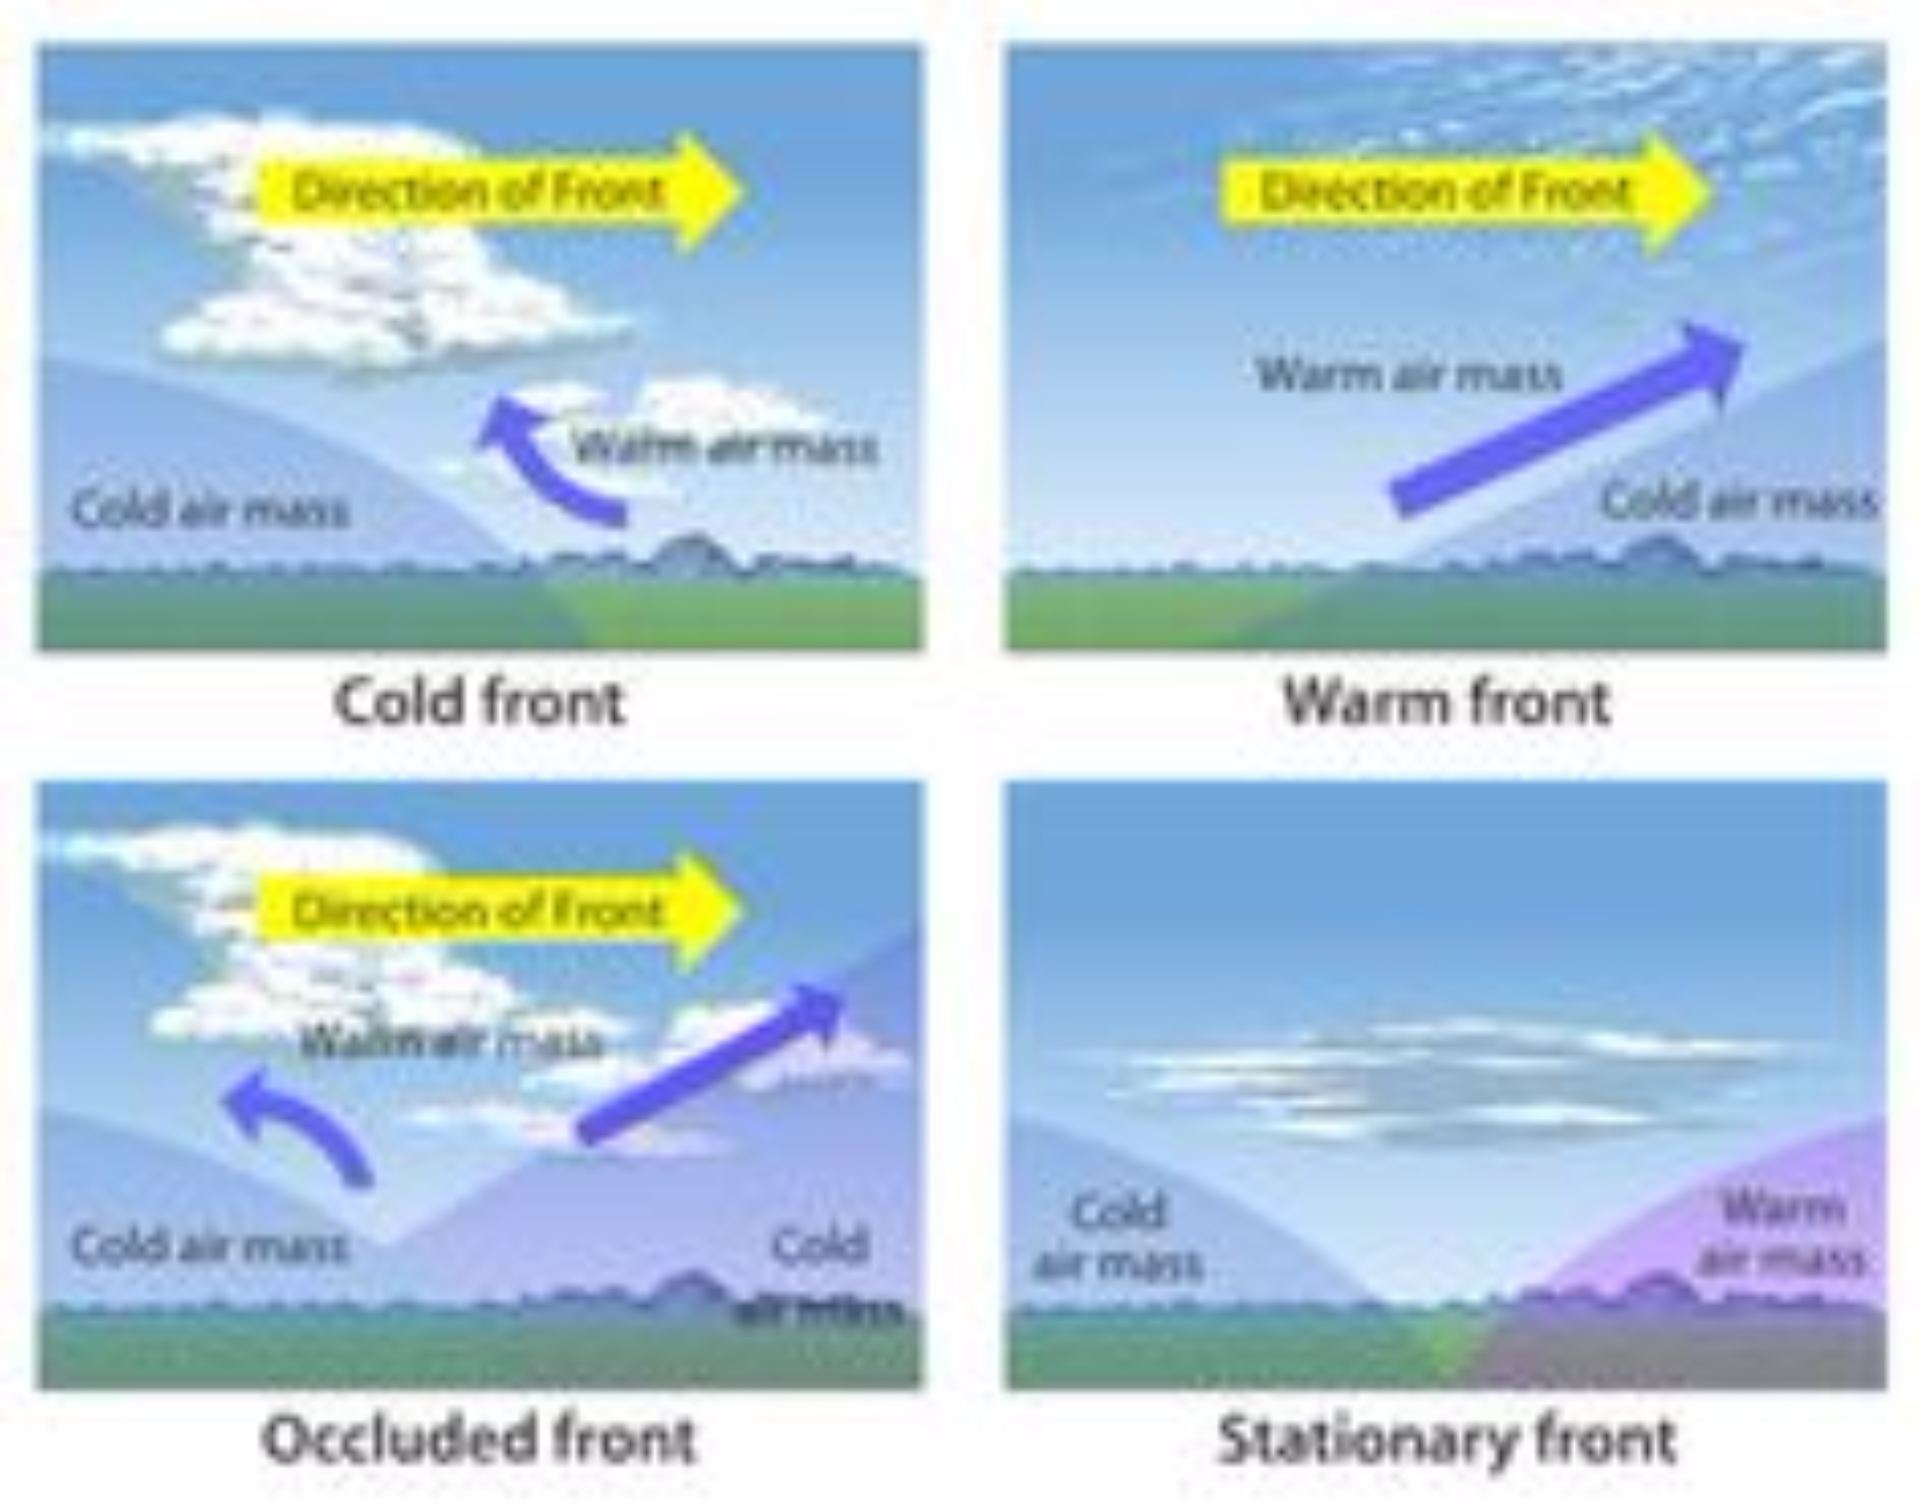 Cold Front: transition zone from warm air to cold air - WW2010 Pictures of cold fronts